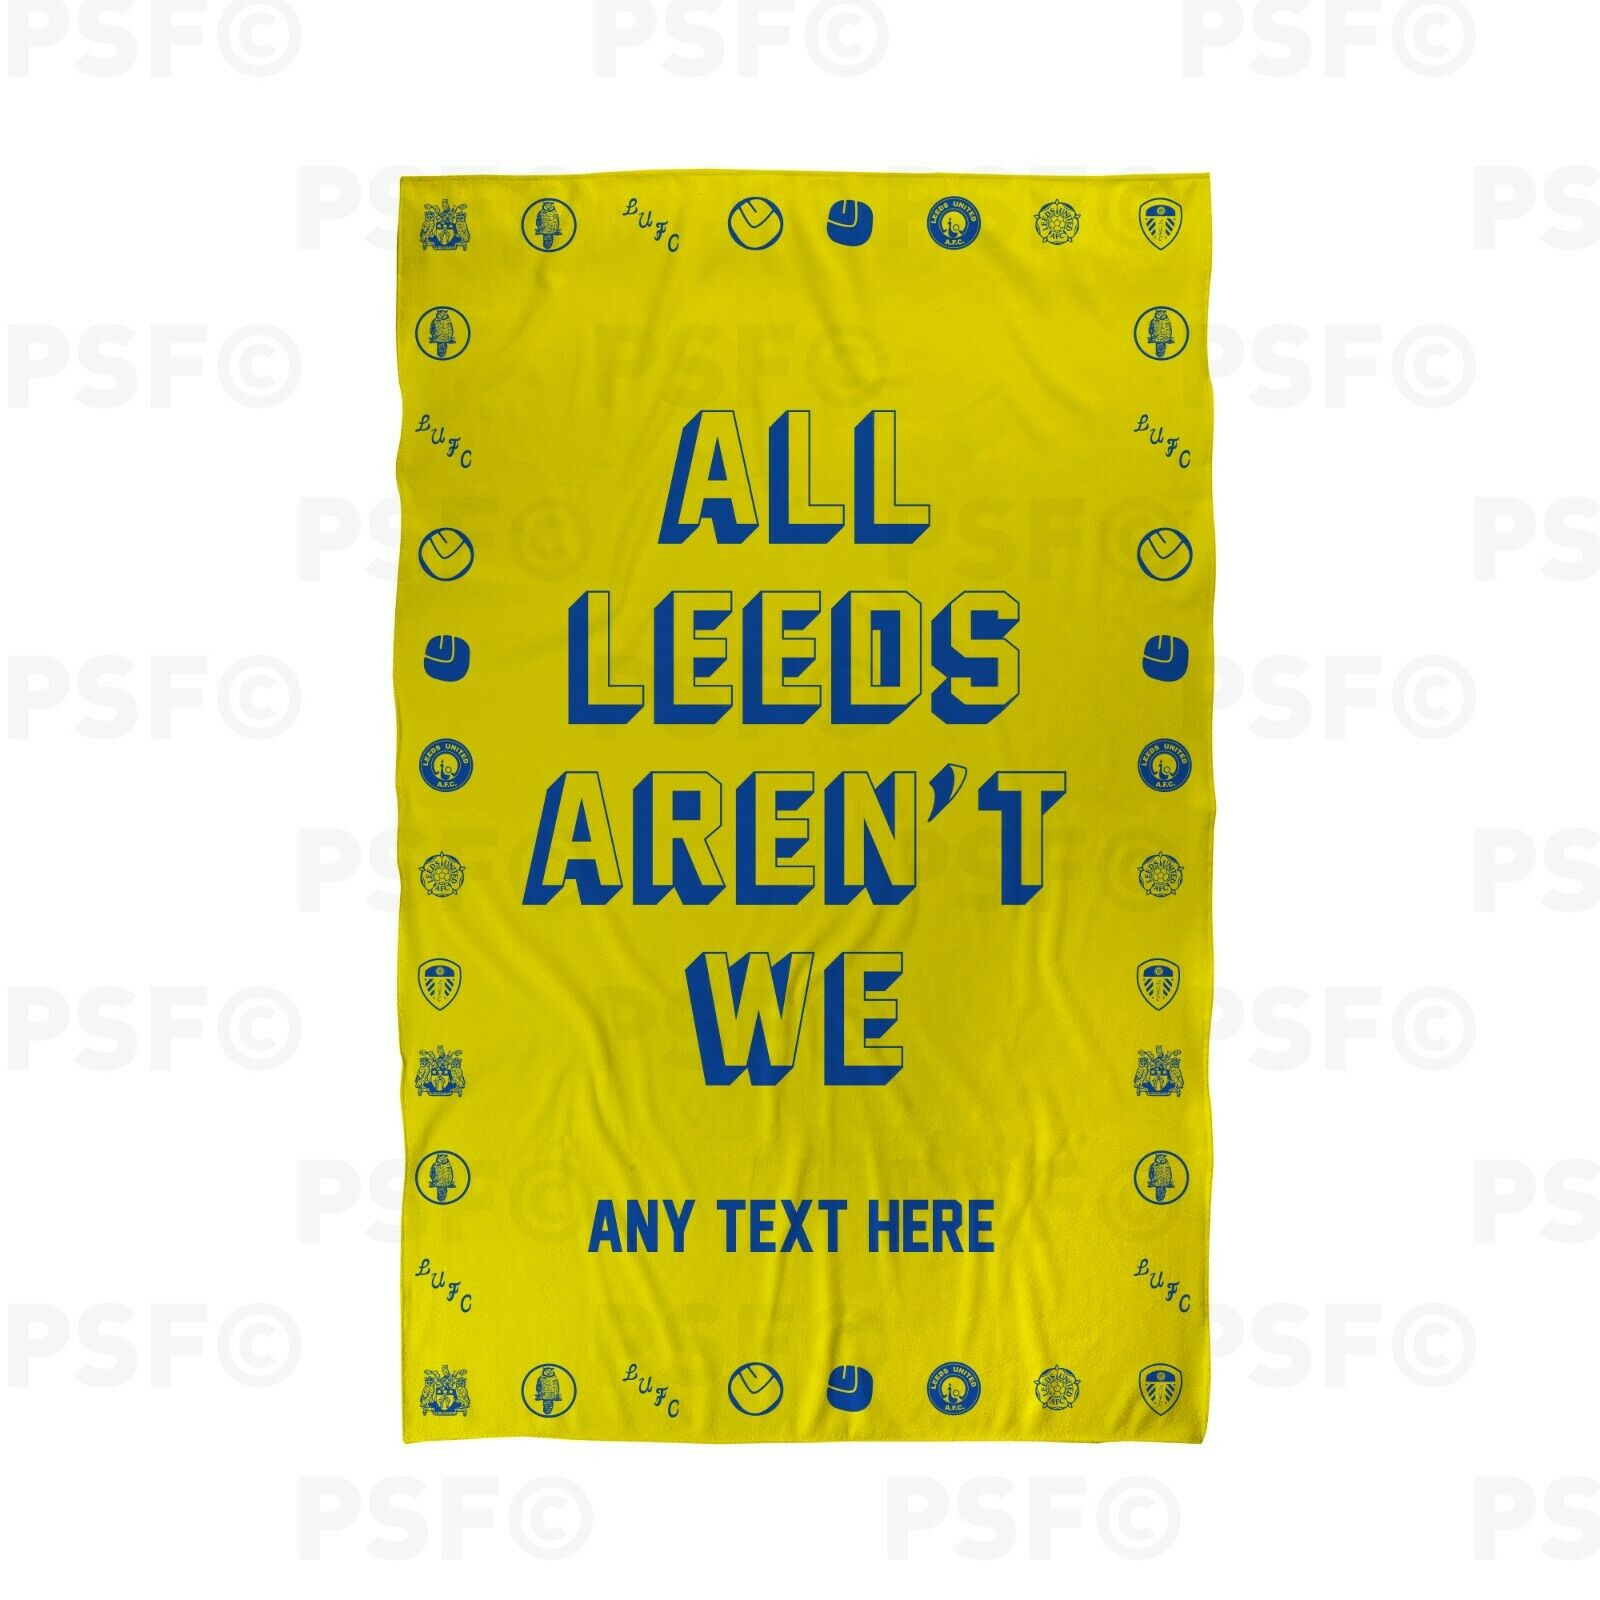 Details about leeds united fc official custom all leeds arent we yellow beach towel lbt024